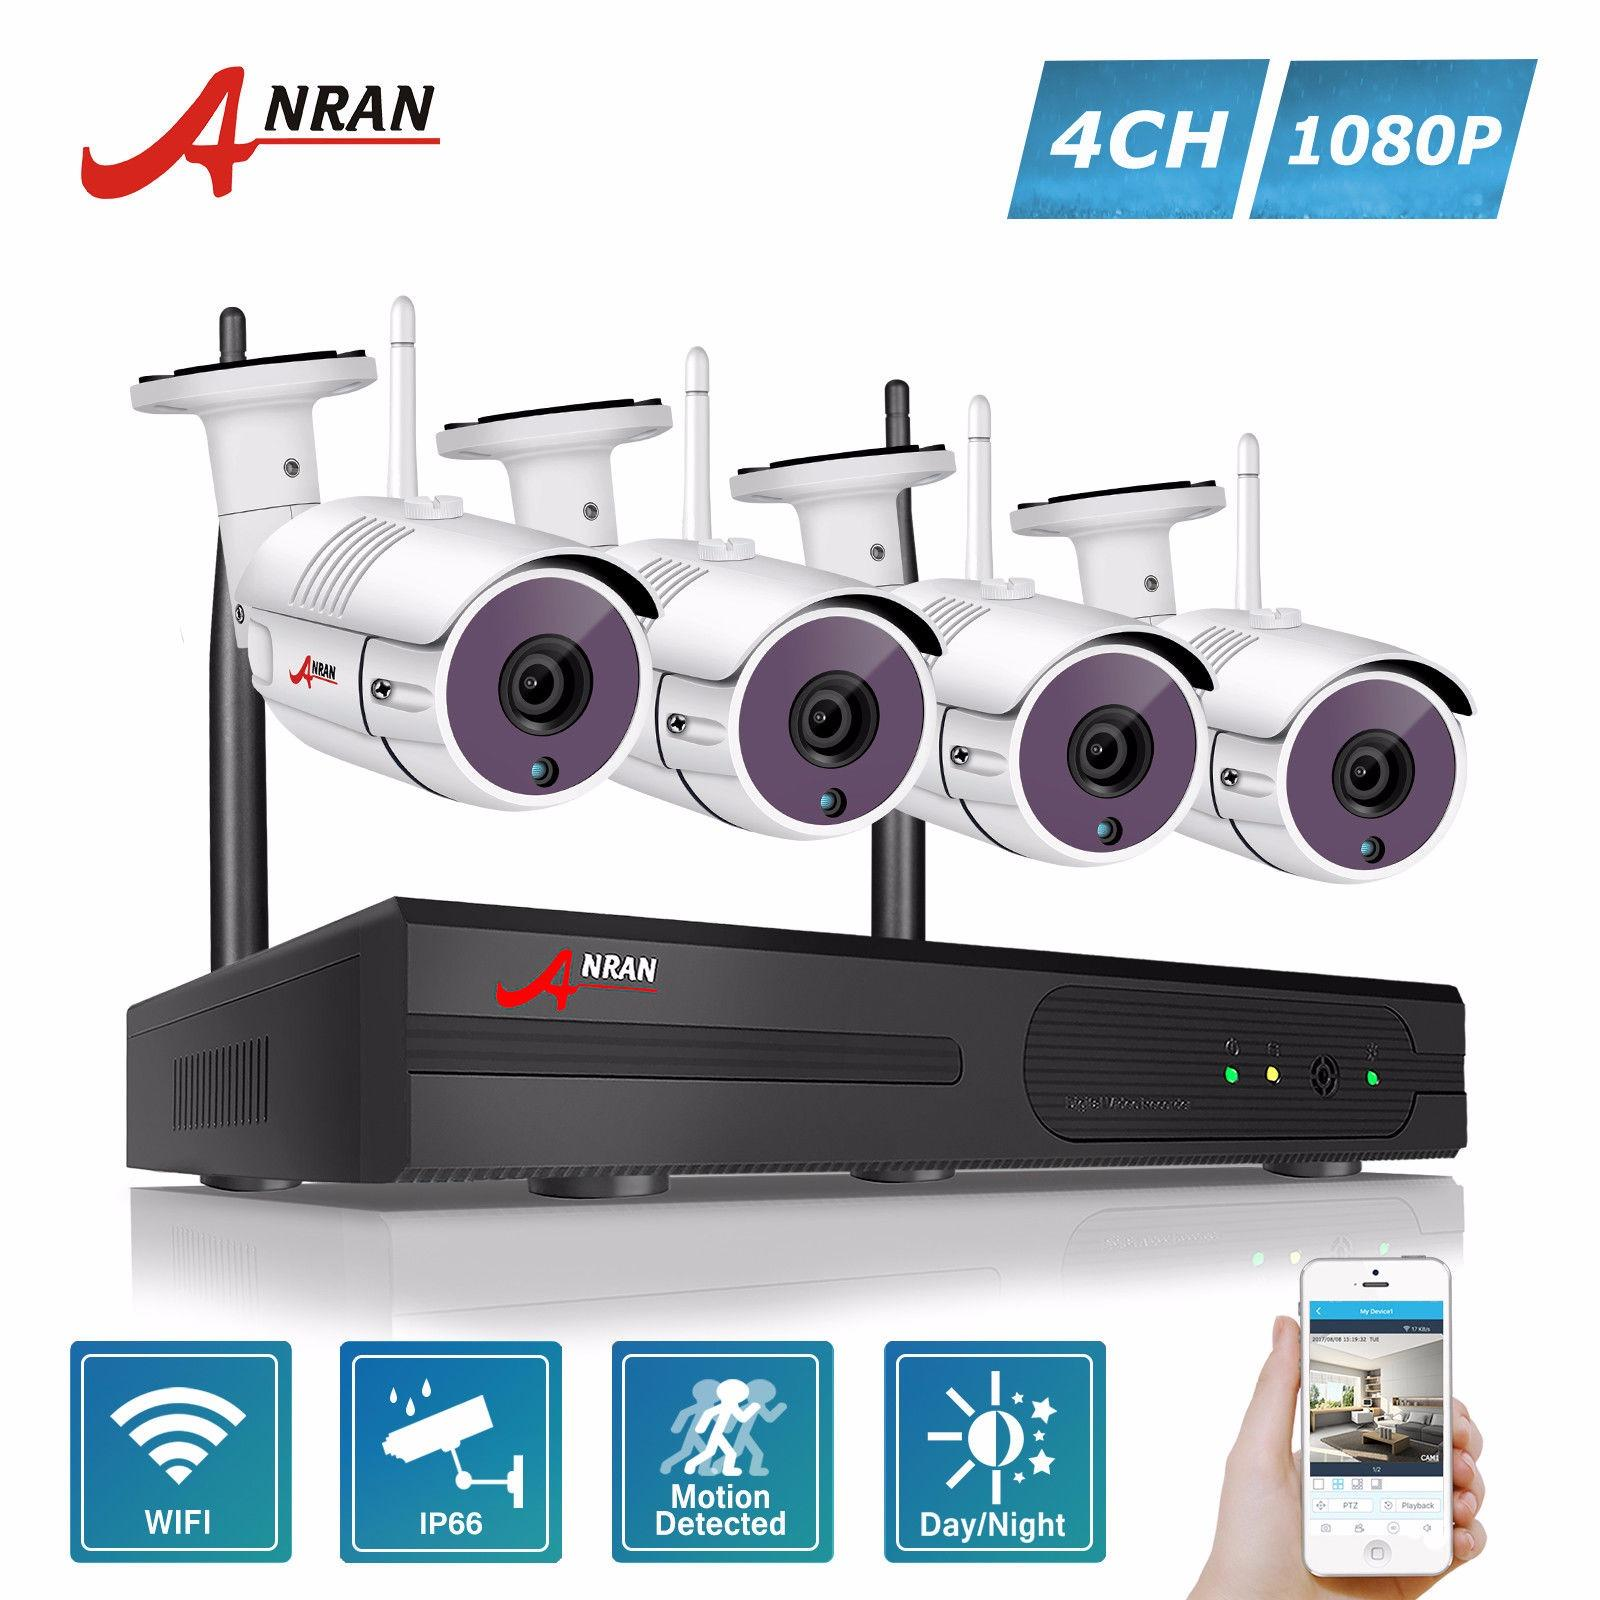 Beli Anran 4Ch Wireless Nvr Security Cctv System P2P 1080P Hd Outdoor Vandalproof Wfi Ip Camera Kredit